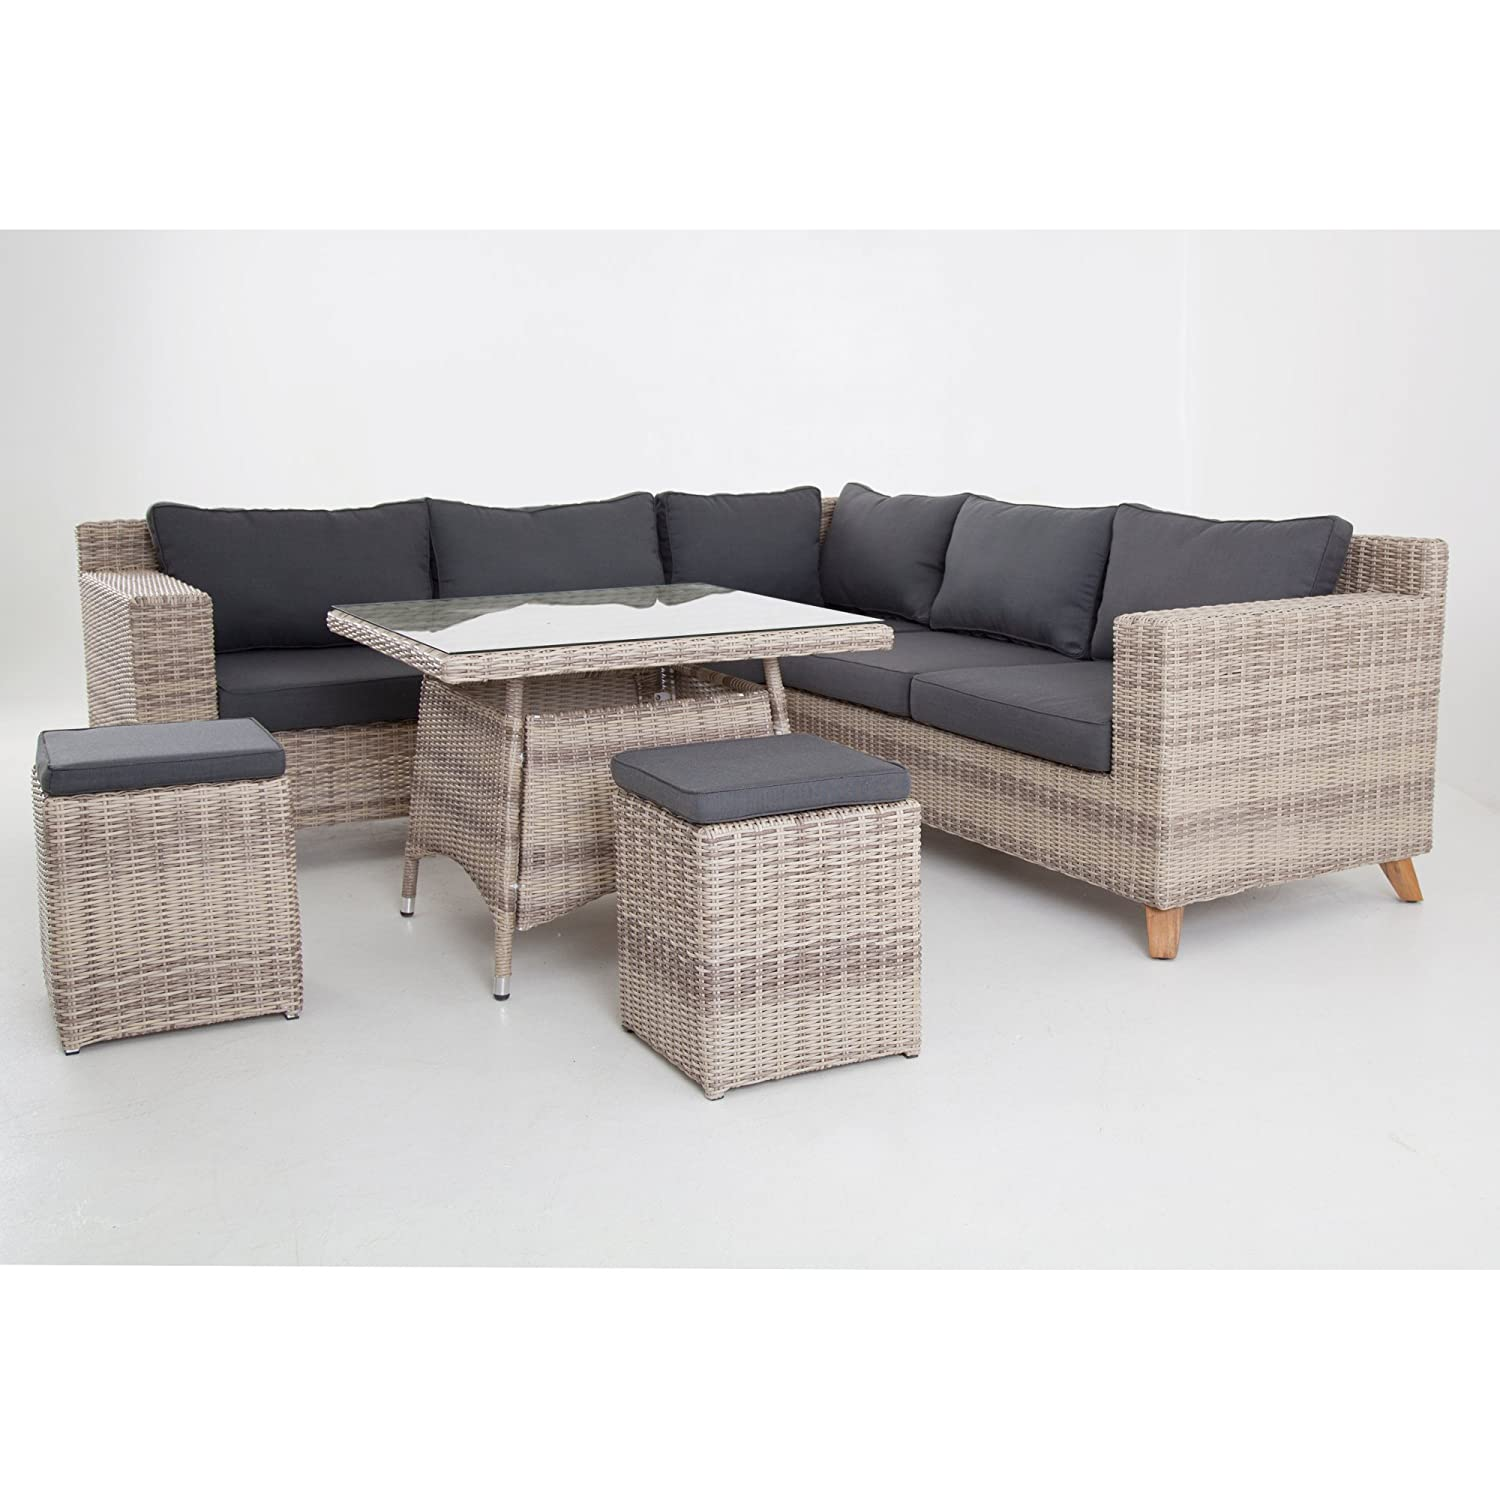 hochwertige tischgruppe in grau braun polyrattan ecklounge garten m bel poly rattan speisegruppe. Black Bedroom Furniture Sets. Home Design Ideas